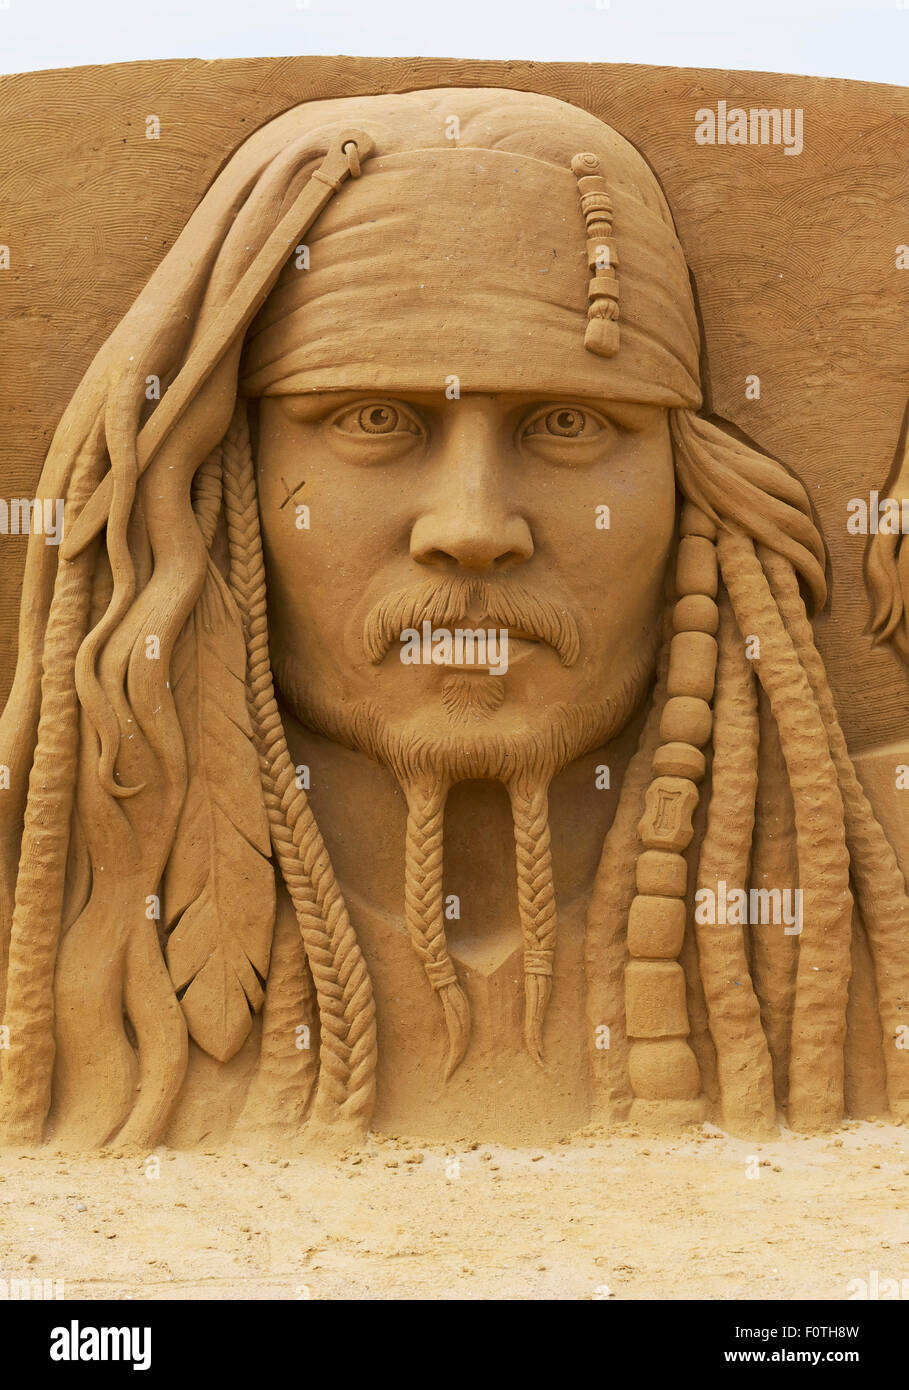 Johnny Depp as Jack Sparrow, sand sculpture, from the film Pirates of the Caribbean, Sand Sculpture Festival Frozen - Stock Image